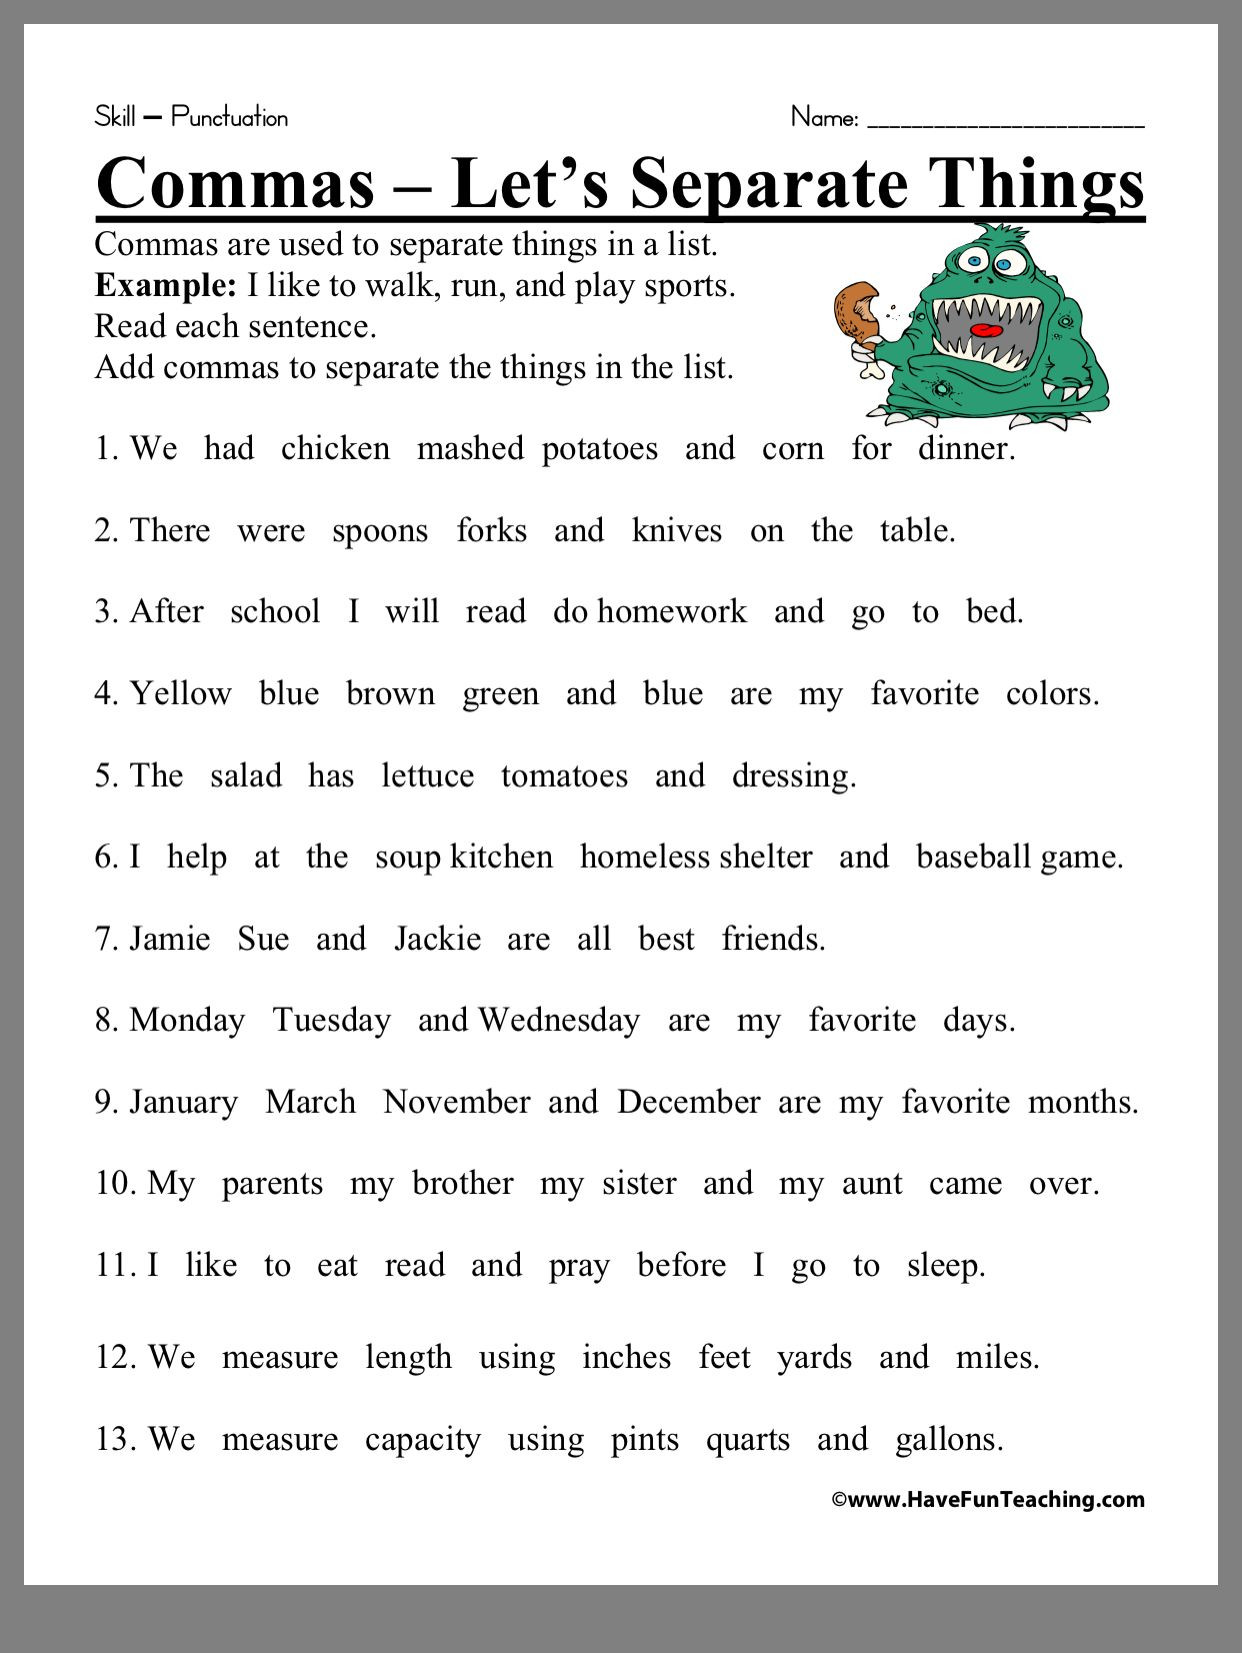 Comma Worksheets 2nd Grade Pin by ashley Fenelon On Classroom